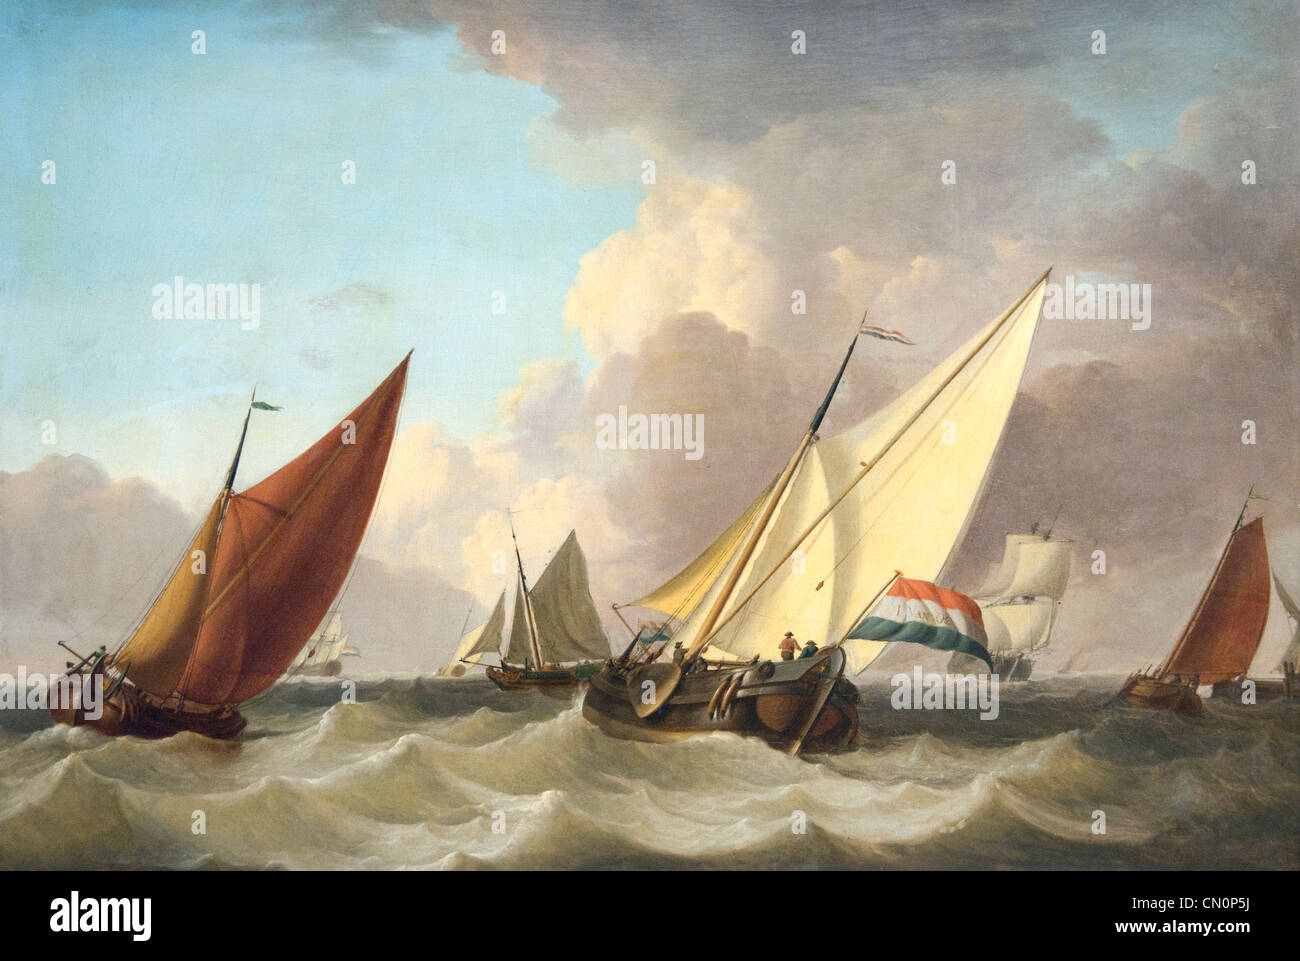 Dutch ships in the Breeze by Jan van Os 1744 - 1808  Dutch Netherlands - Stock Image